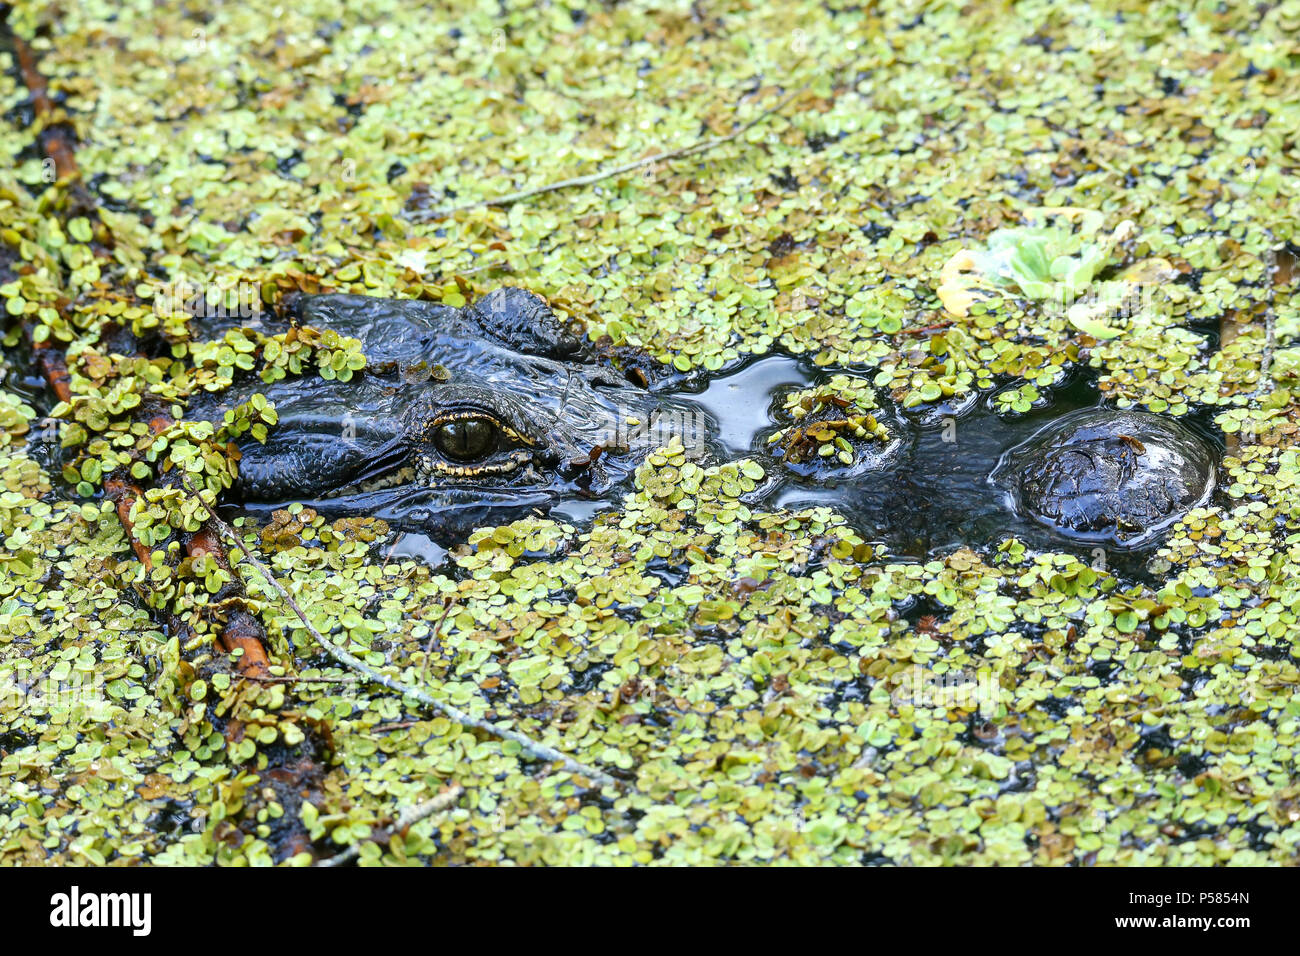 Portrait of Alligator (Alligator mississippiensis) floating in a swamp - Stock Image